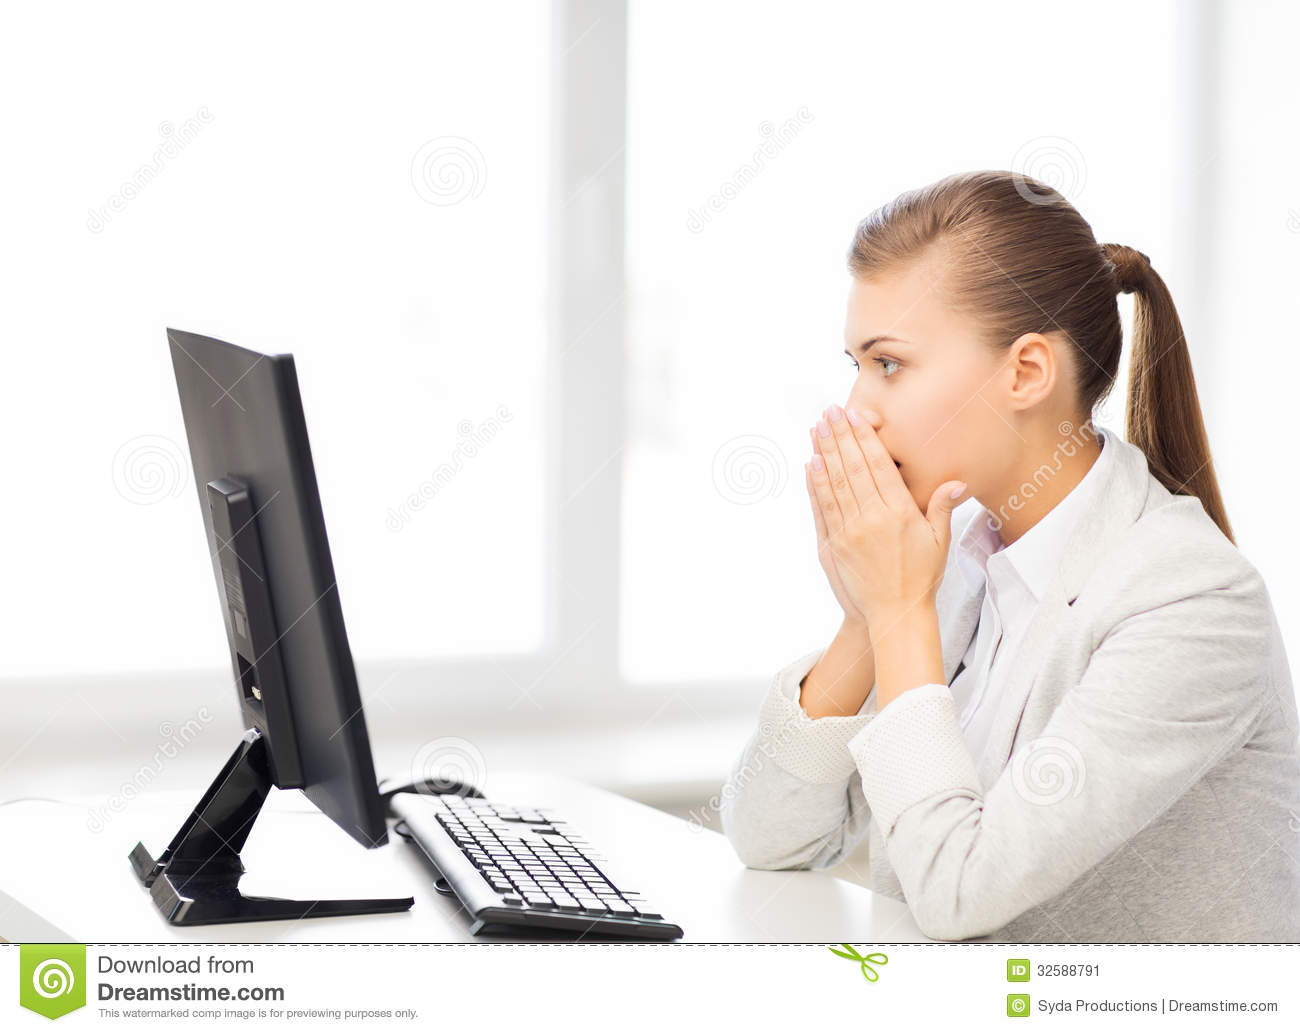 Stressed Student With Computer In Office Stock Image - Image: 32588791